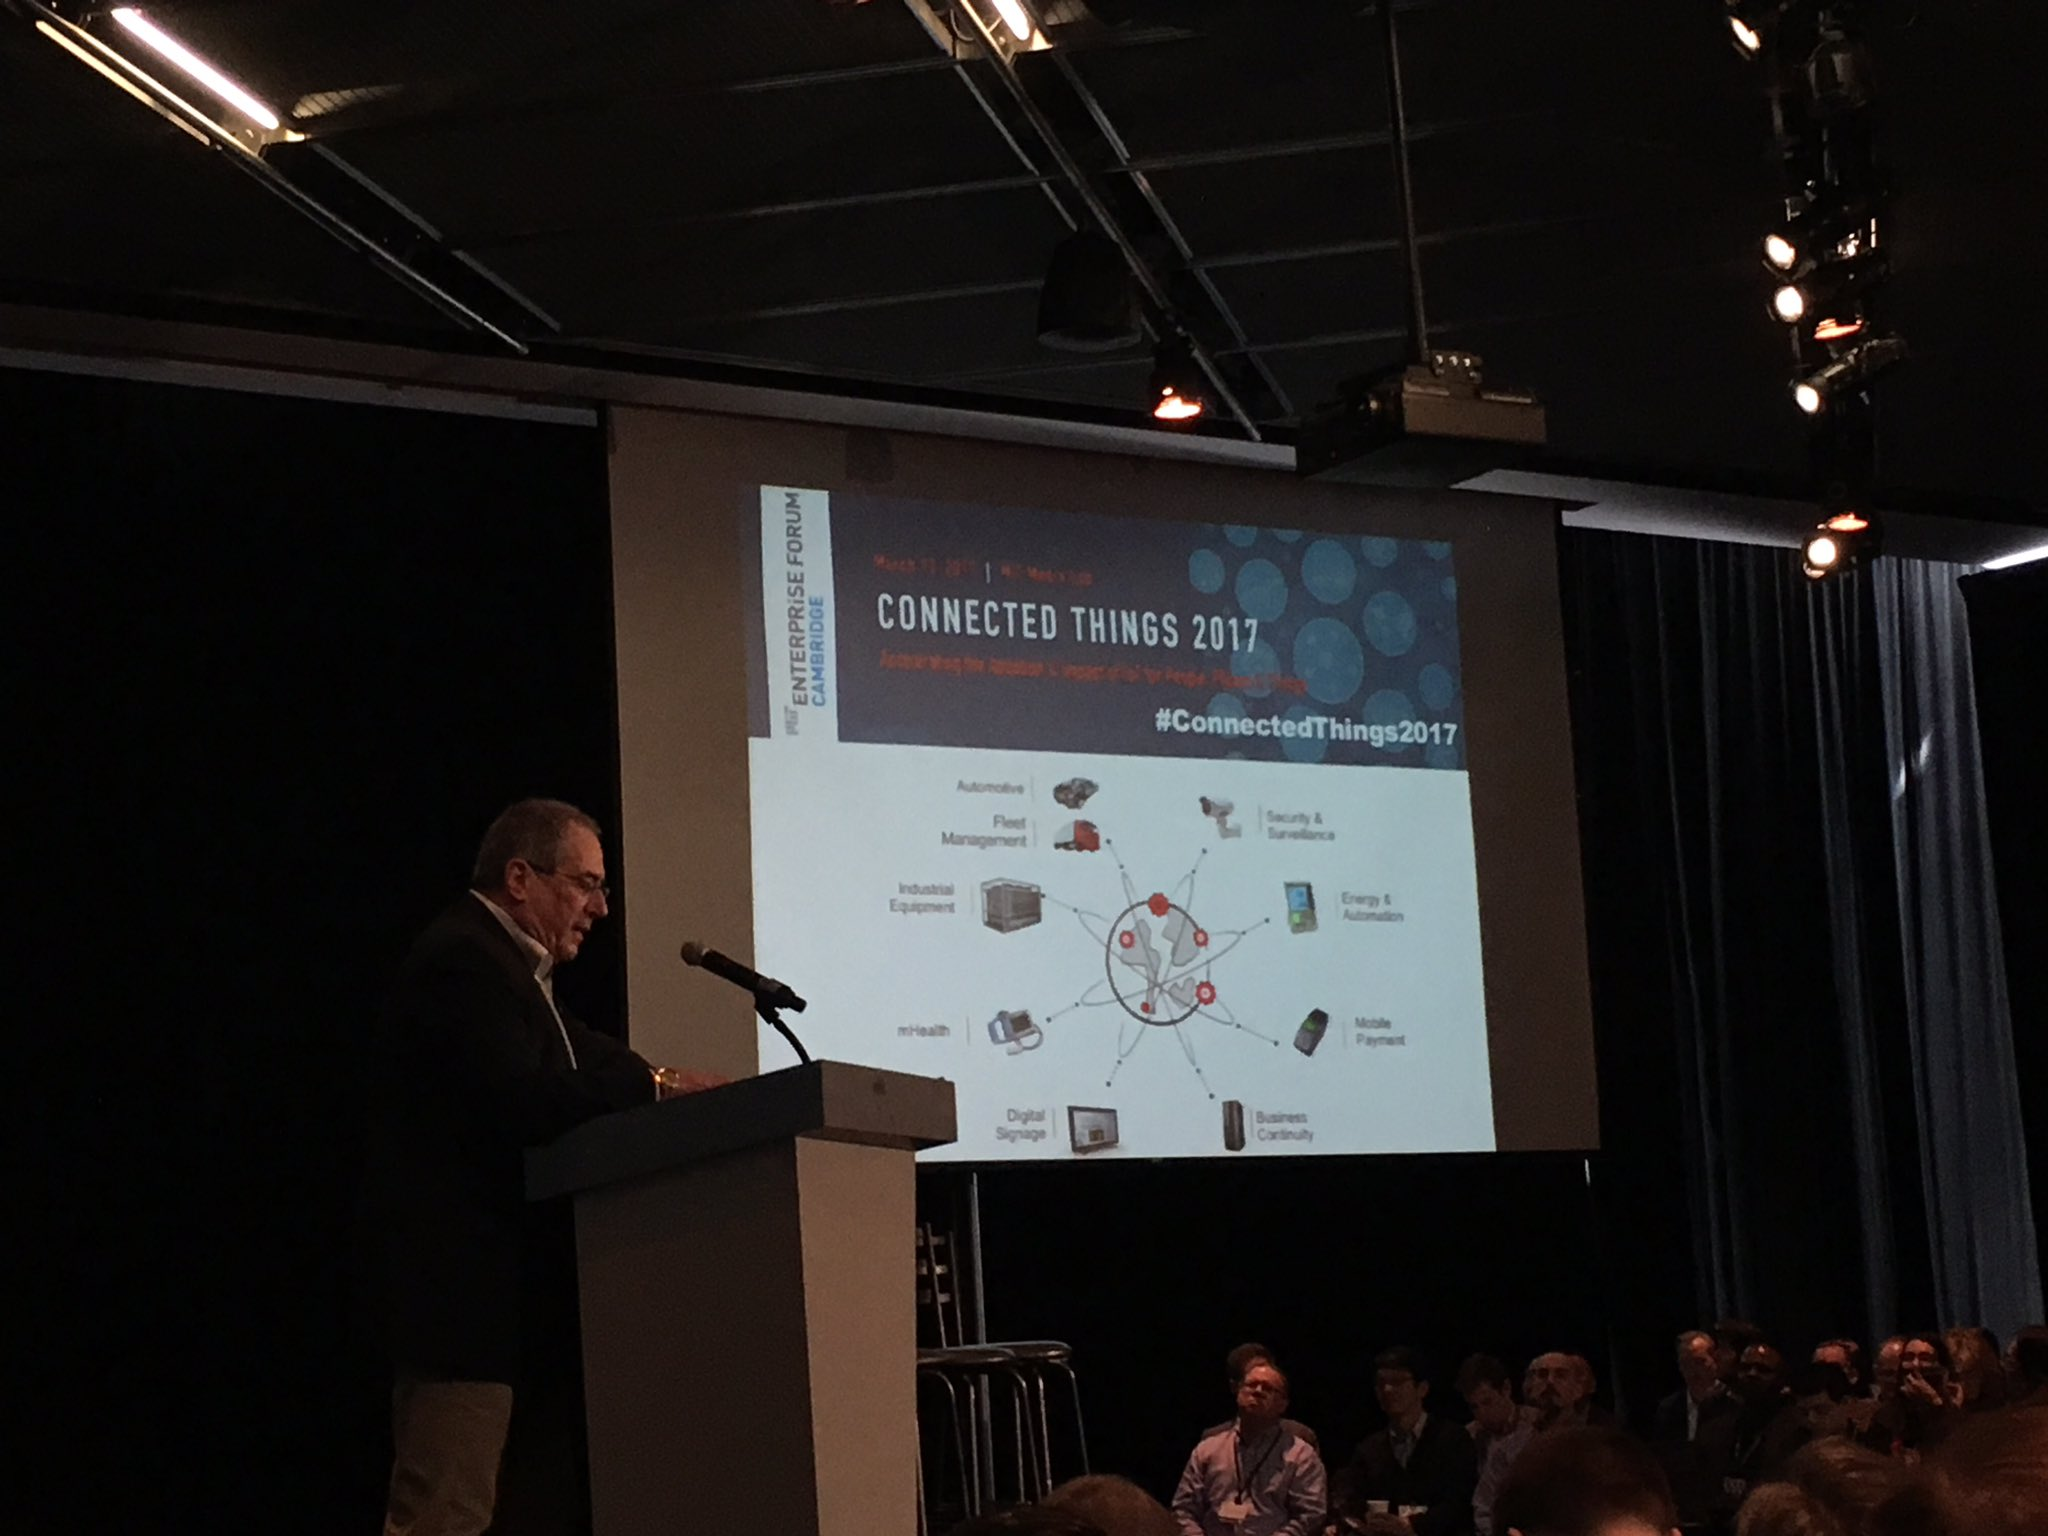 Nice chilly Boston morning to kick off @mitentforum #ConnectedThings2017 conference at @medialab https://t.co/fN4tQrWpWl